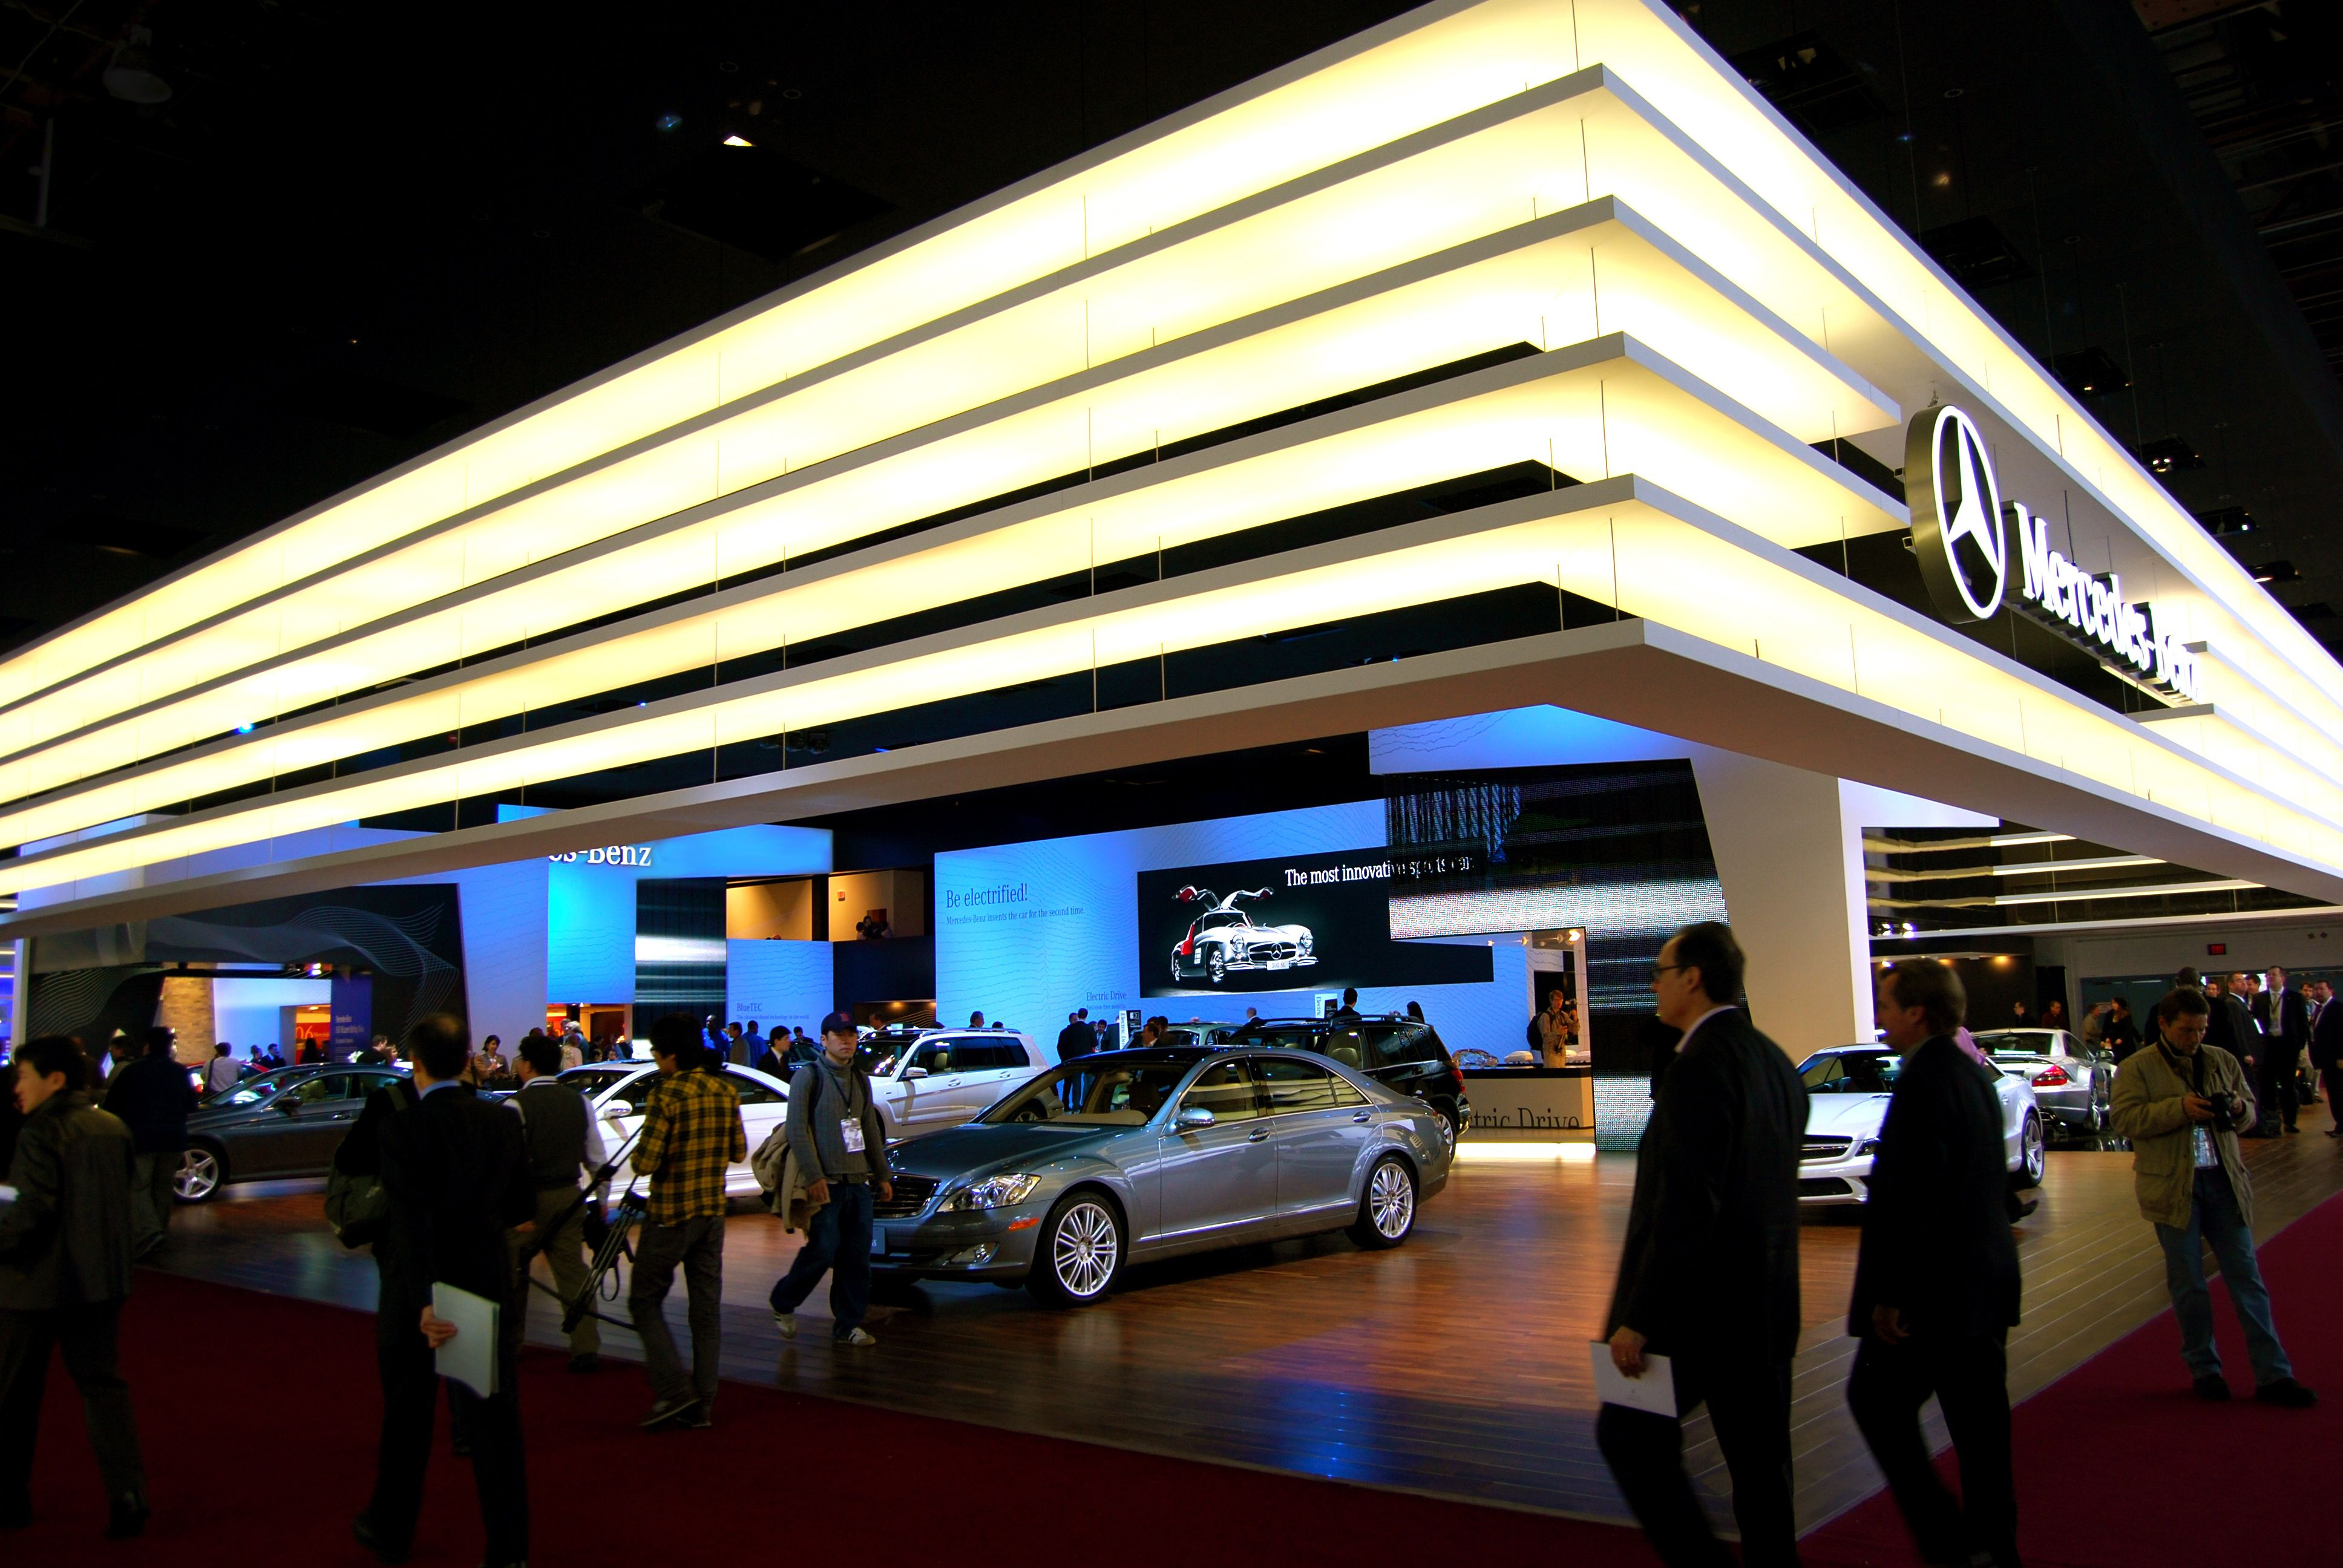 Exhibition Booth Header : Large stand automaker lighted box header trade show